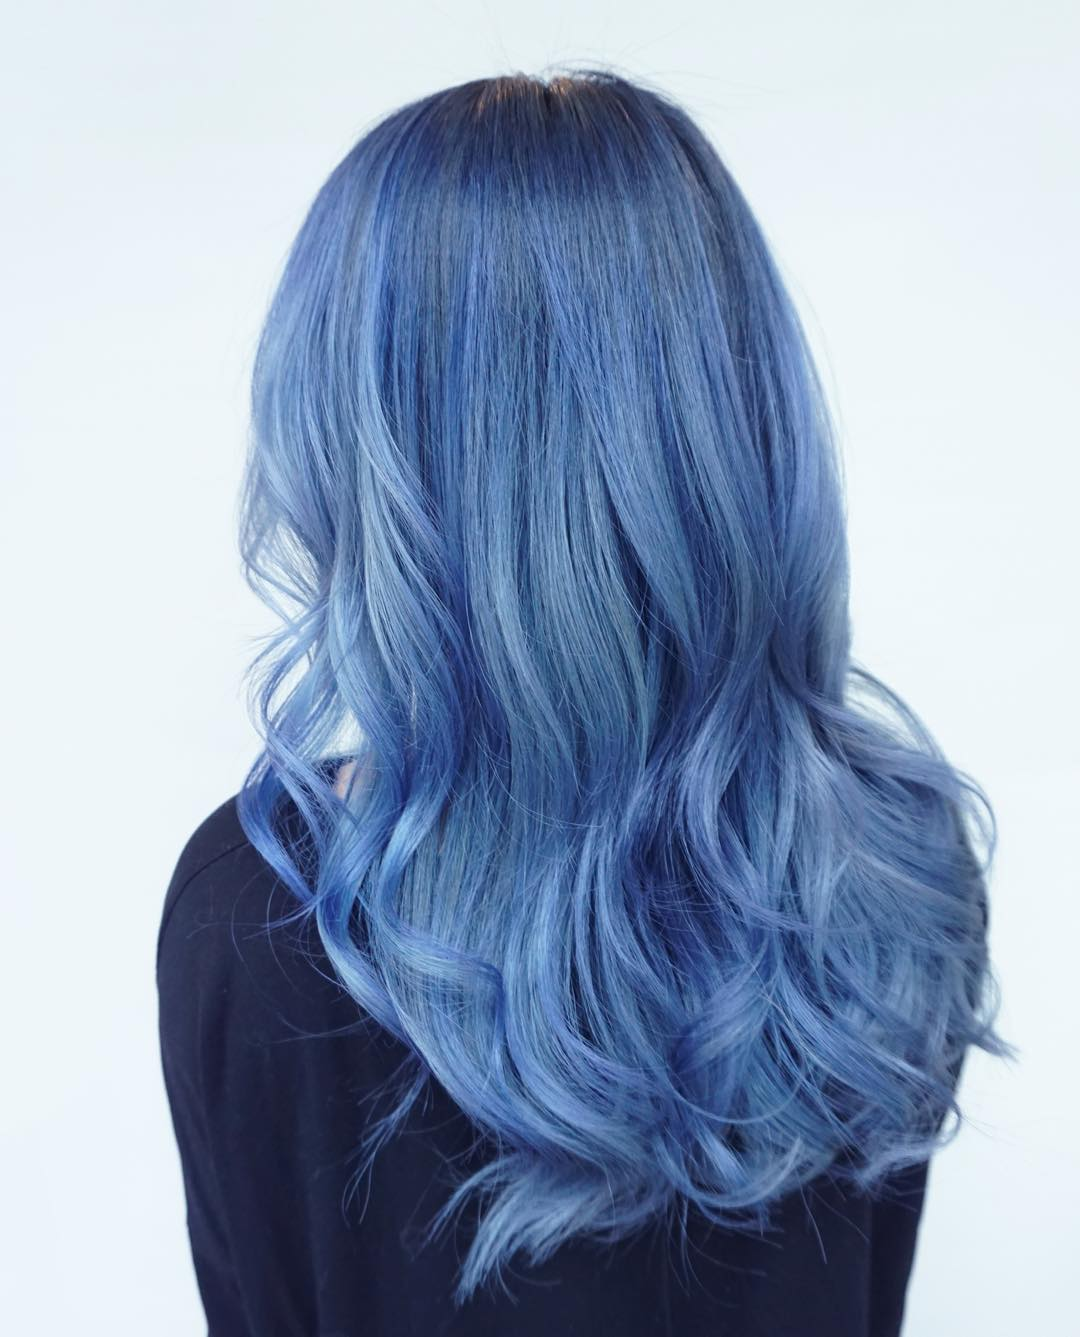 Black Hair With Electric Blue Highlights Hairs Picture Gallery